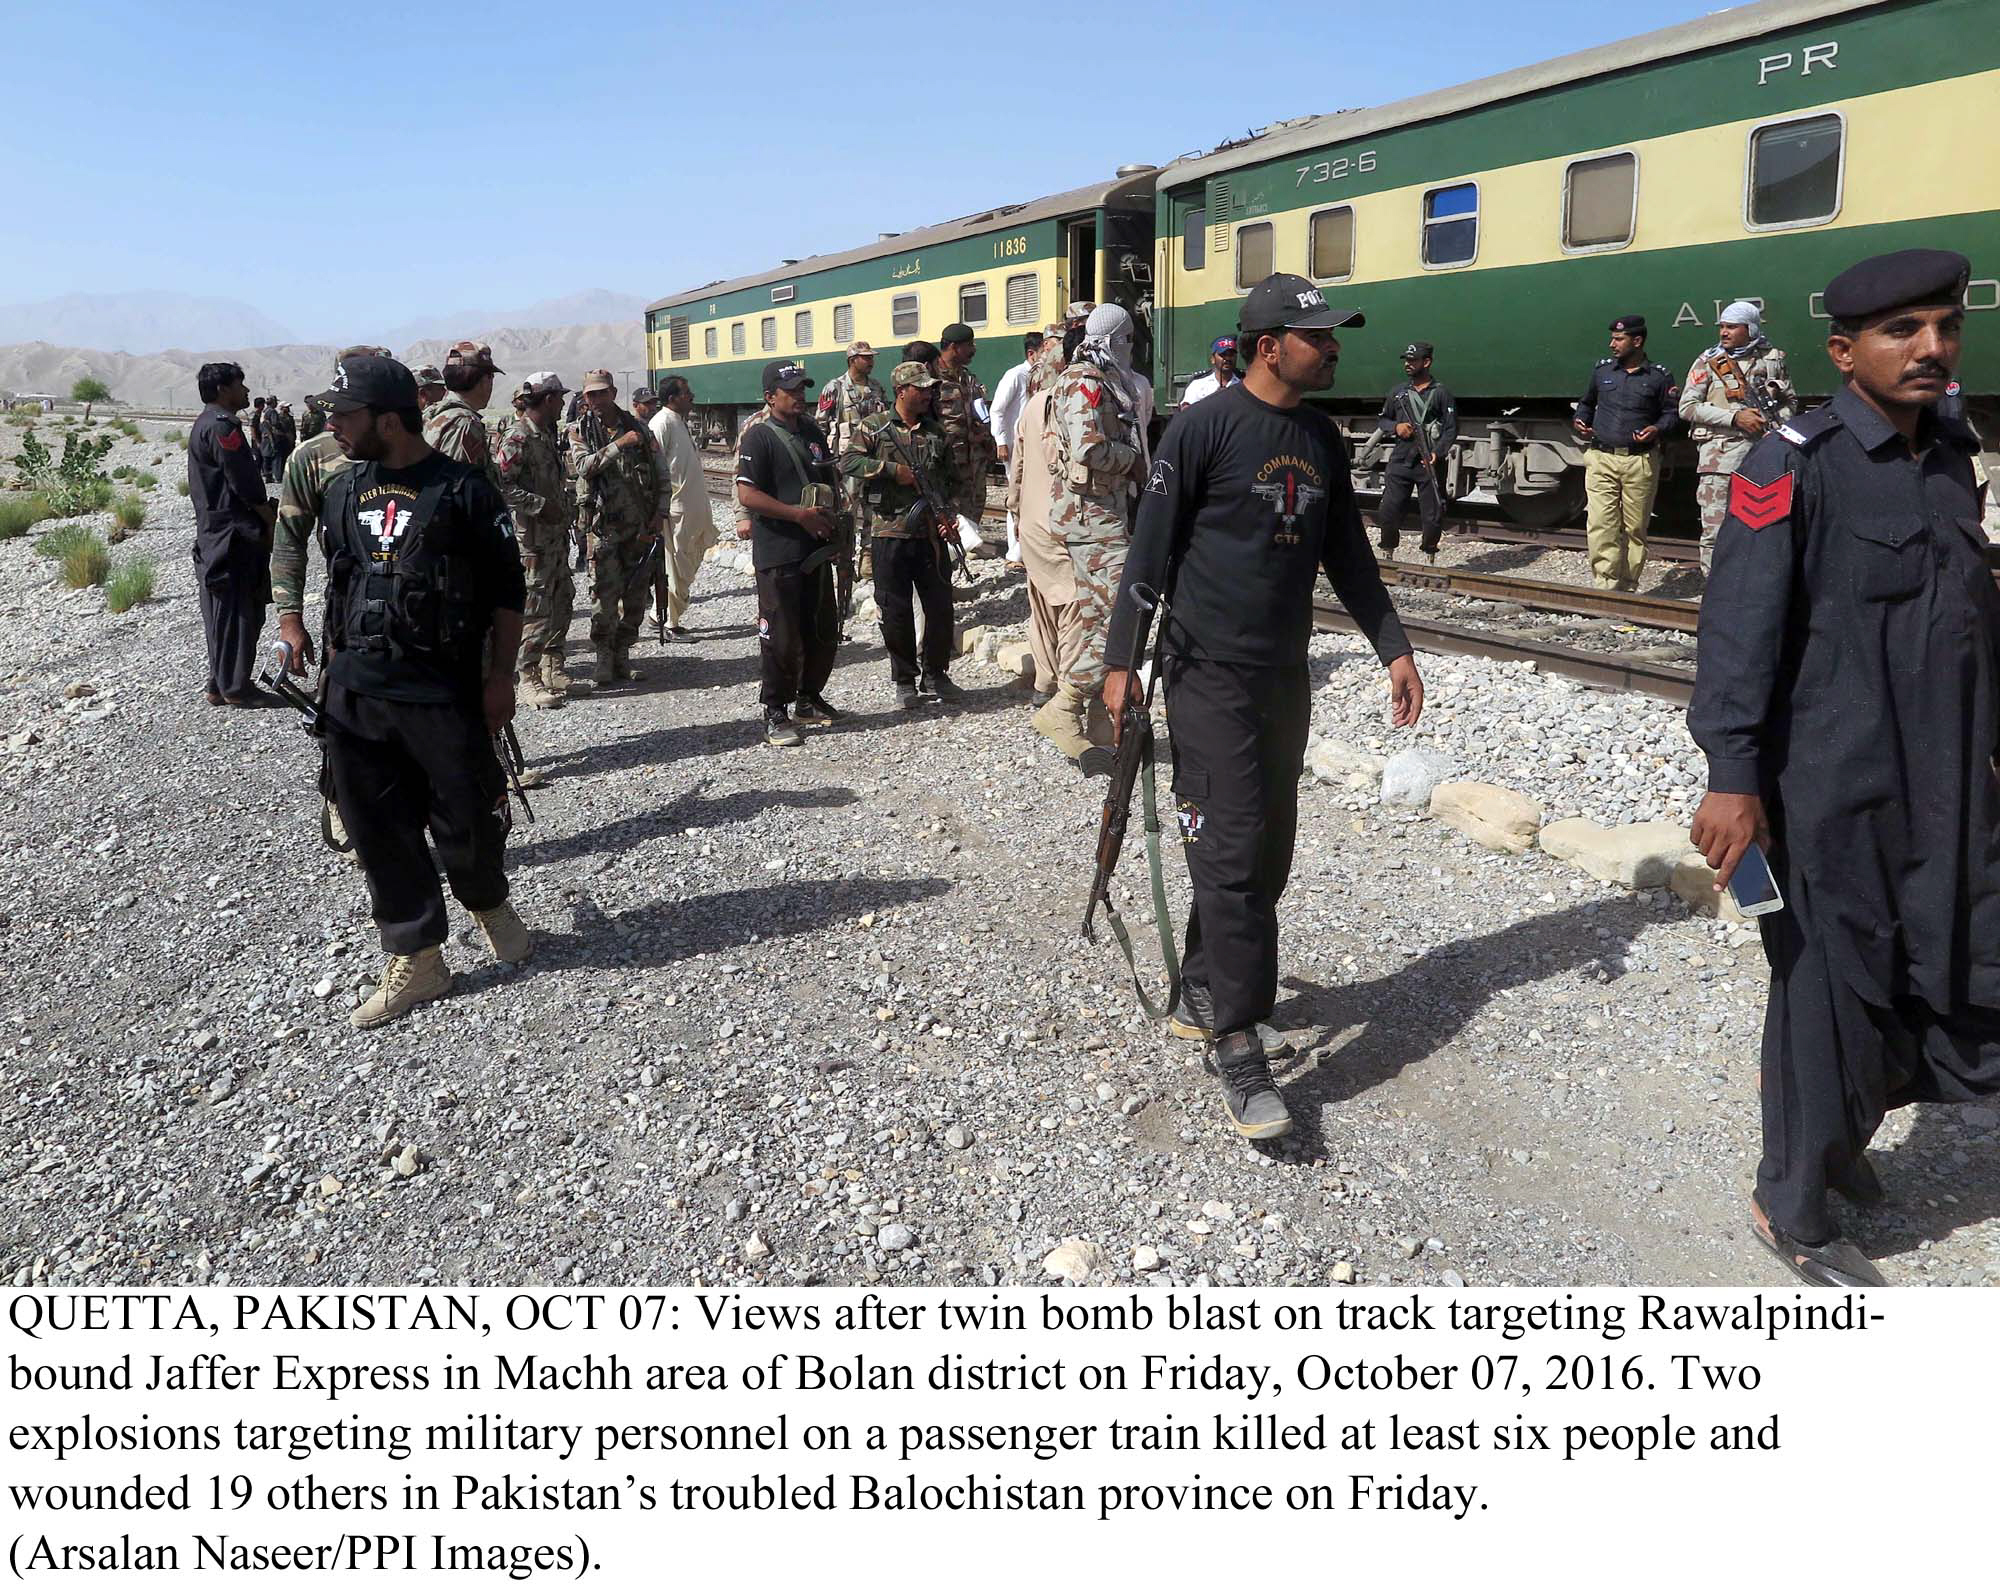 After the twin bombing Pakistan Railway has toughened security and deployed more Railway and FC personnel while Punjab-bound trains have started operating between the two provinces PHOTO: PPI